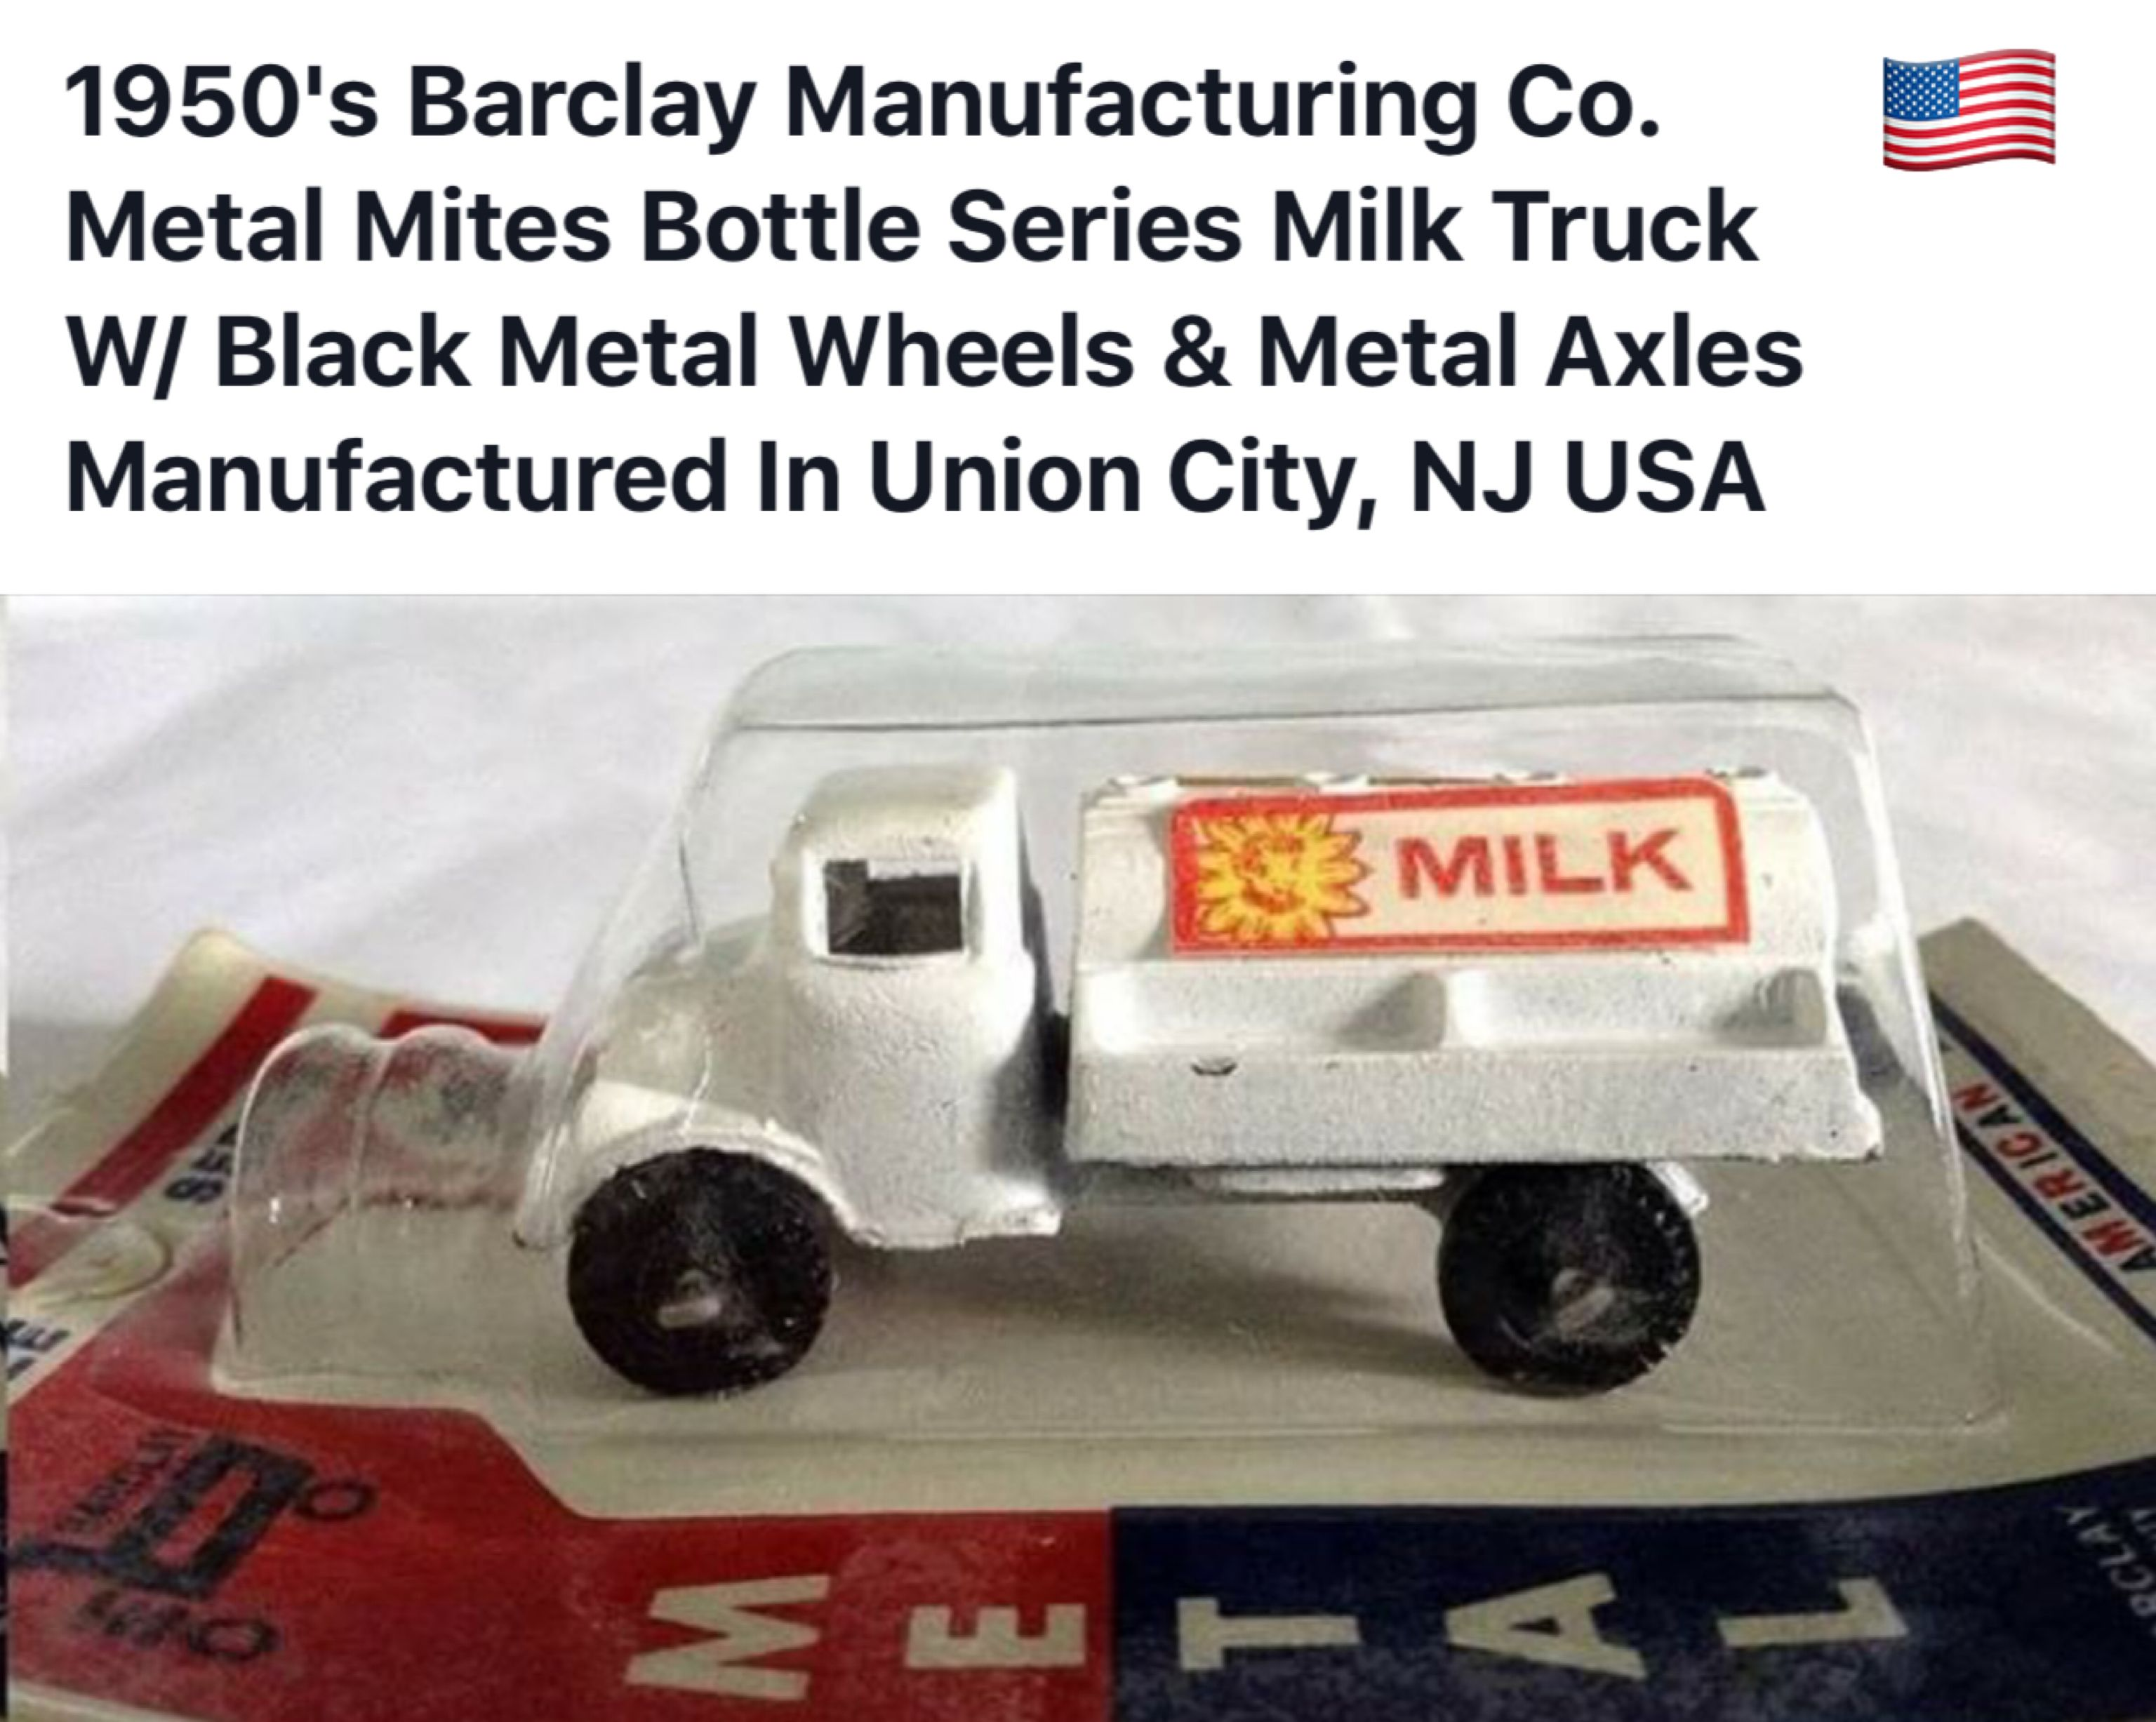 Toys car image  Pin by HAC on Old Toy trucks u cars  Pinterest  Toy trucks